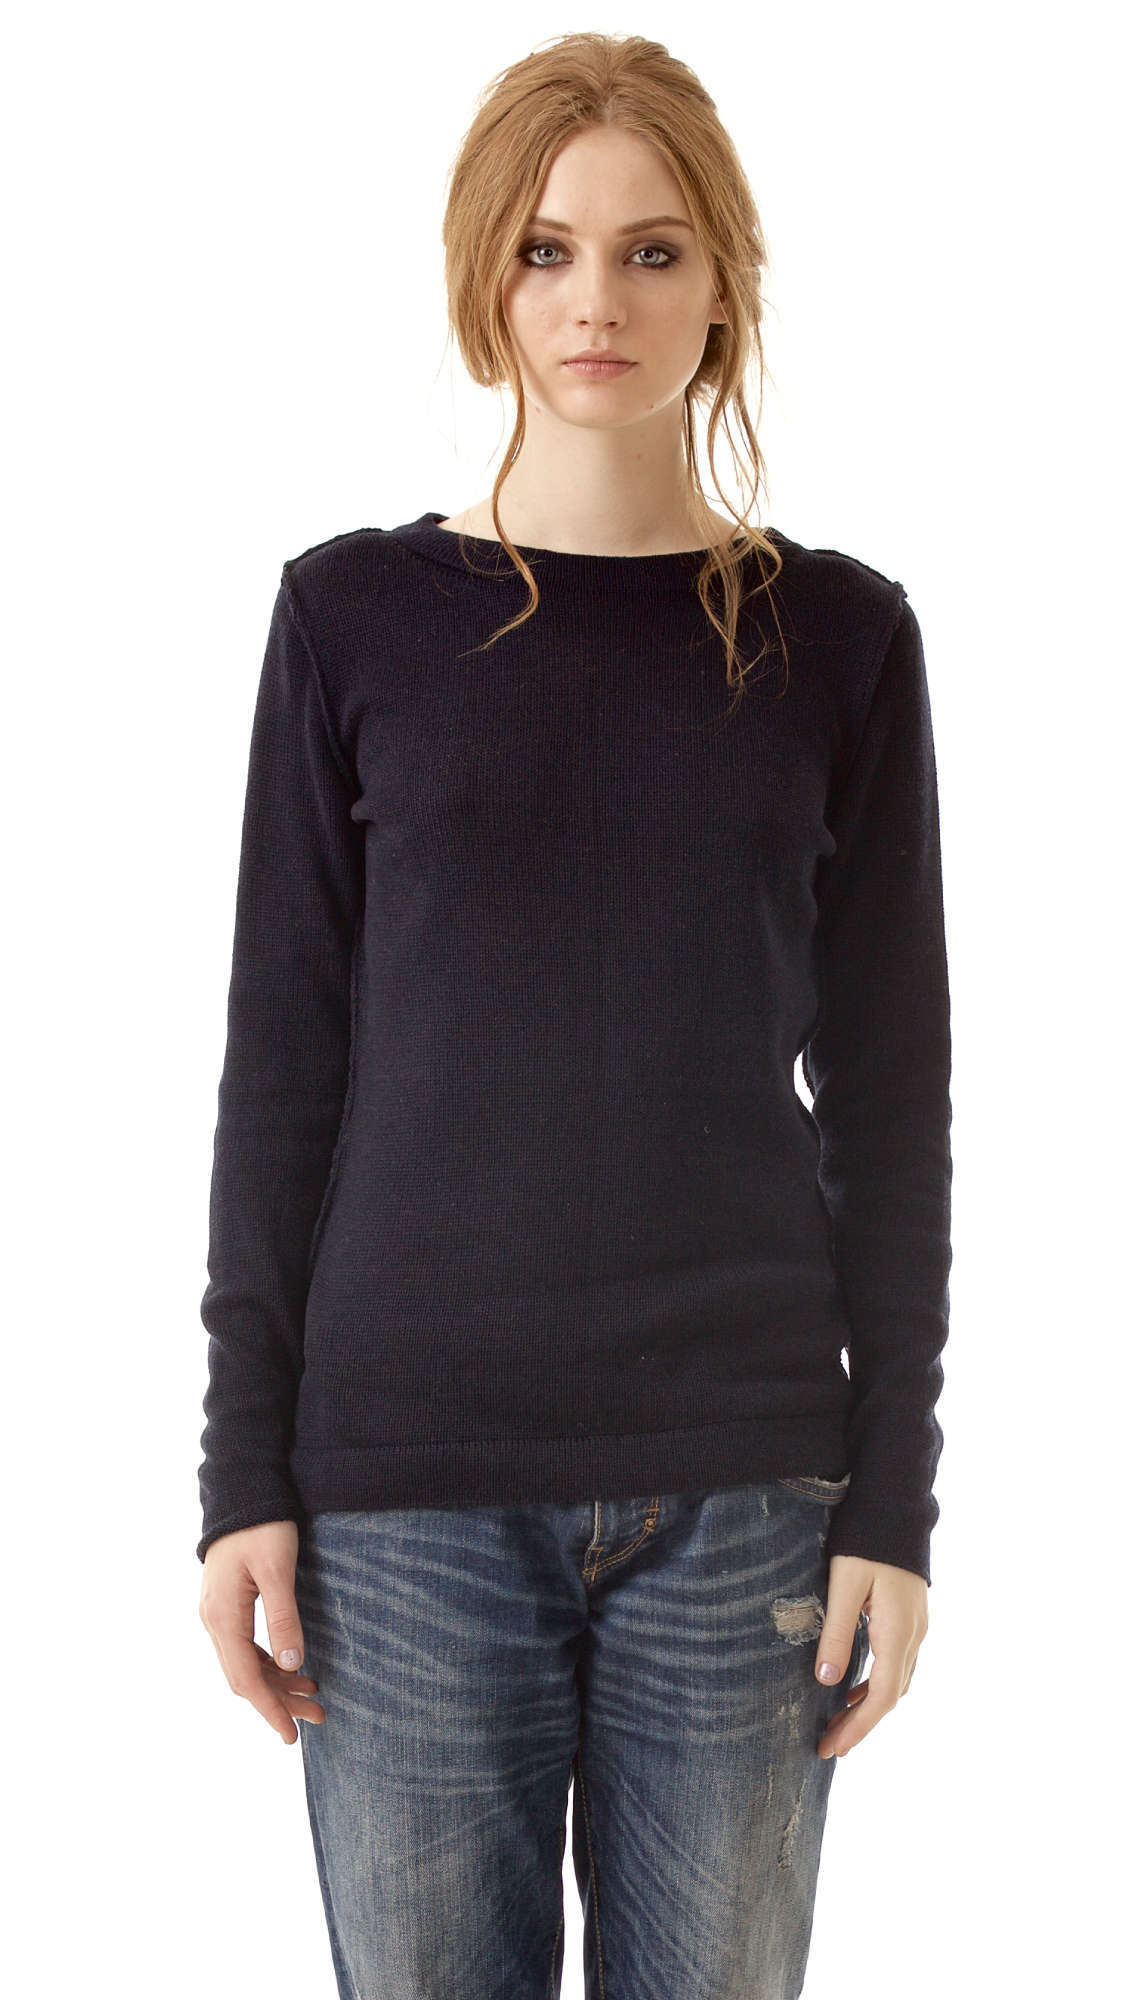 Black cashmere sweater ELSA